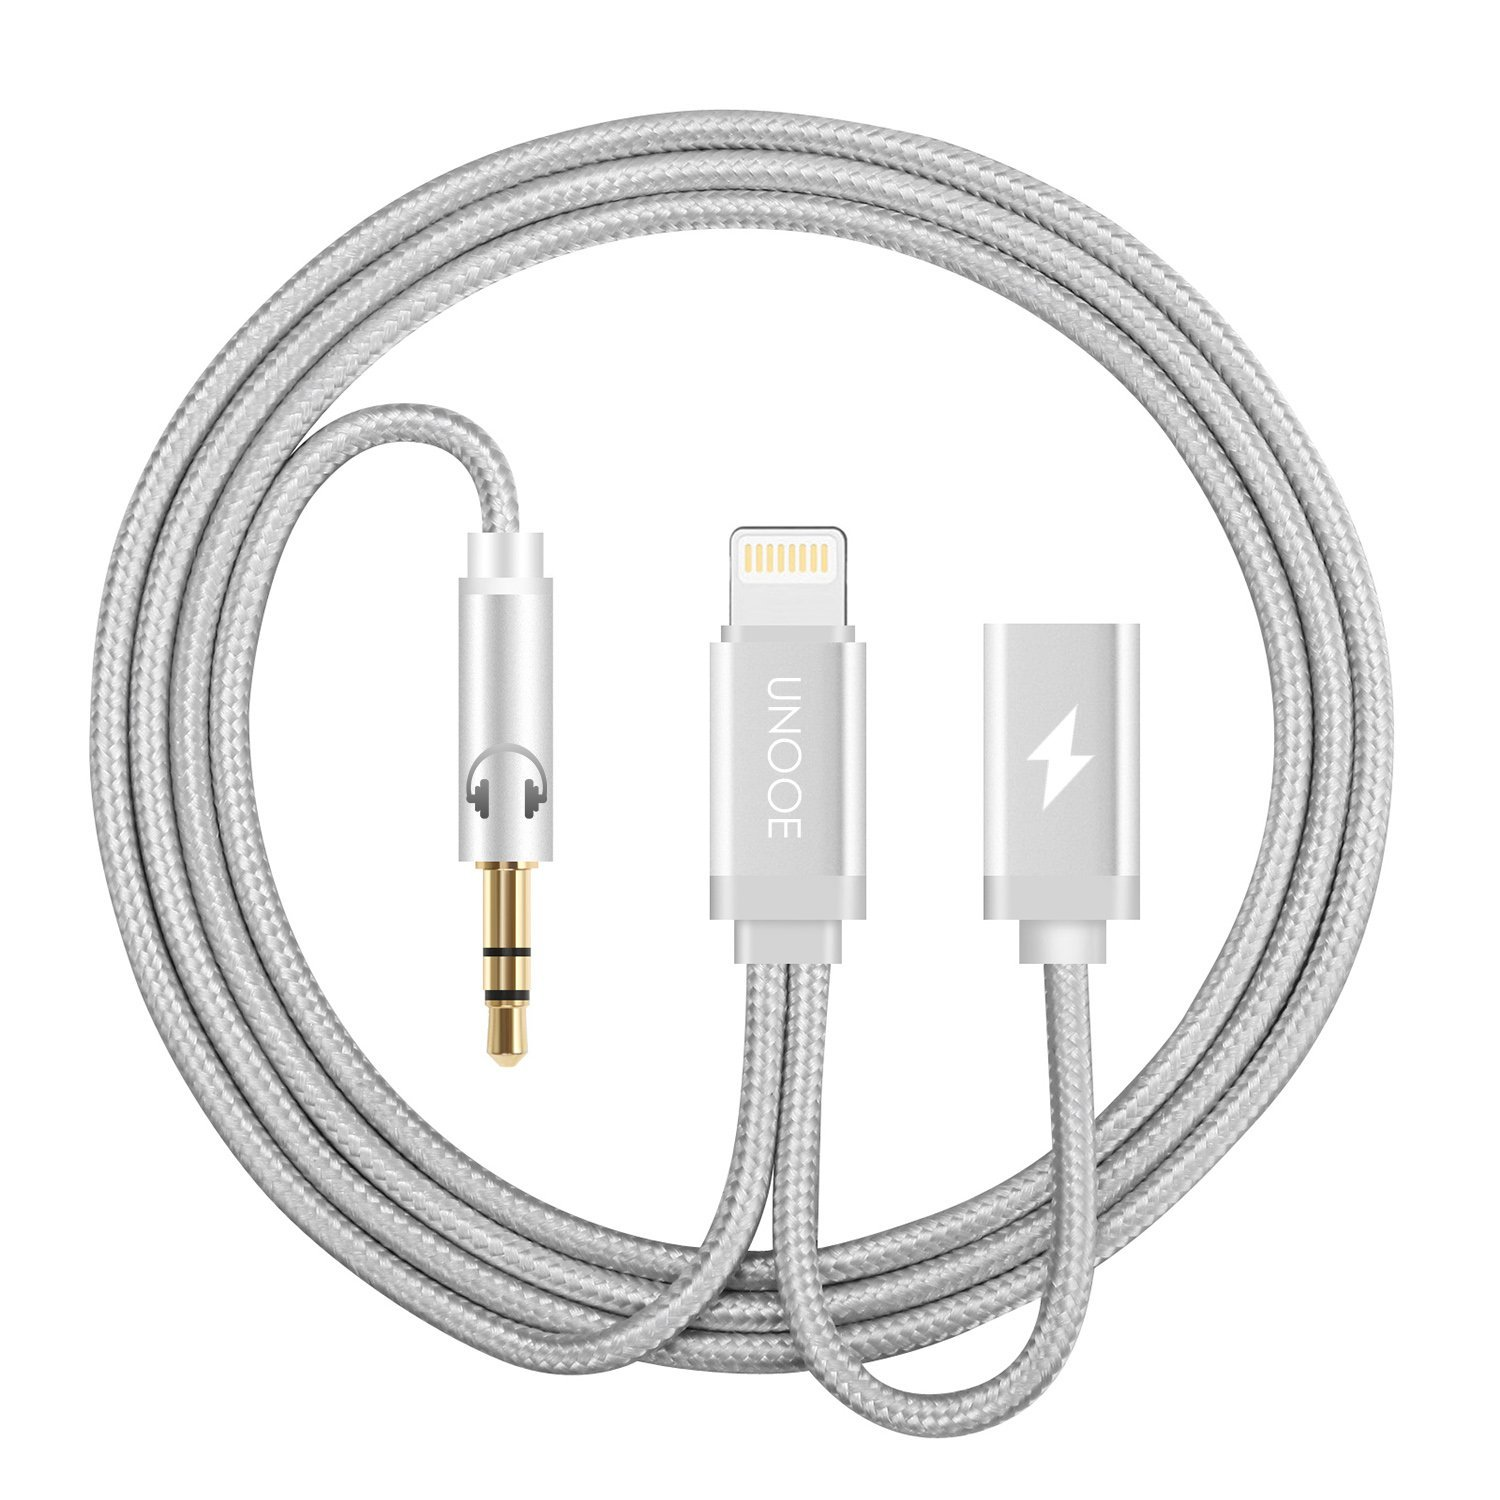 iPhone 7 Aux Adapter, Lightning to 3.5mm Headphone Jack Cable with Lightning Female Charger Cord Port for iPhone 7 / 7 Plus Charging and Listening in Car-Silver